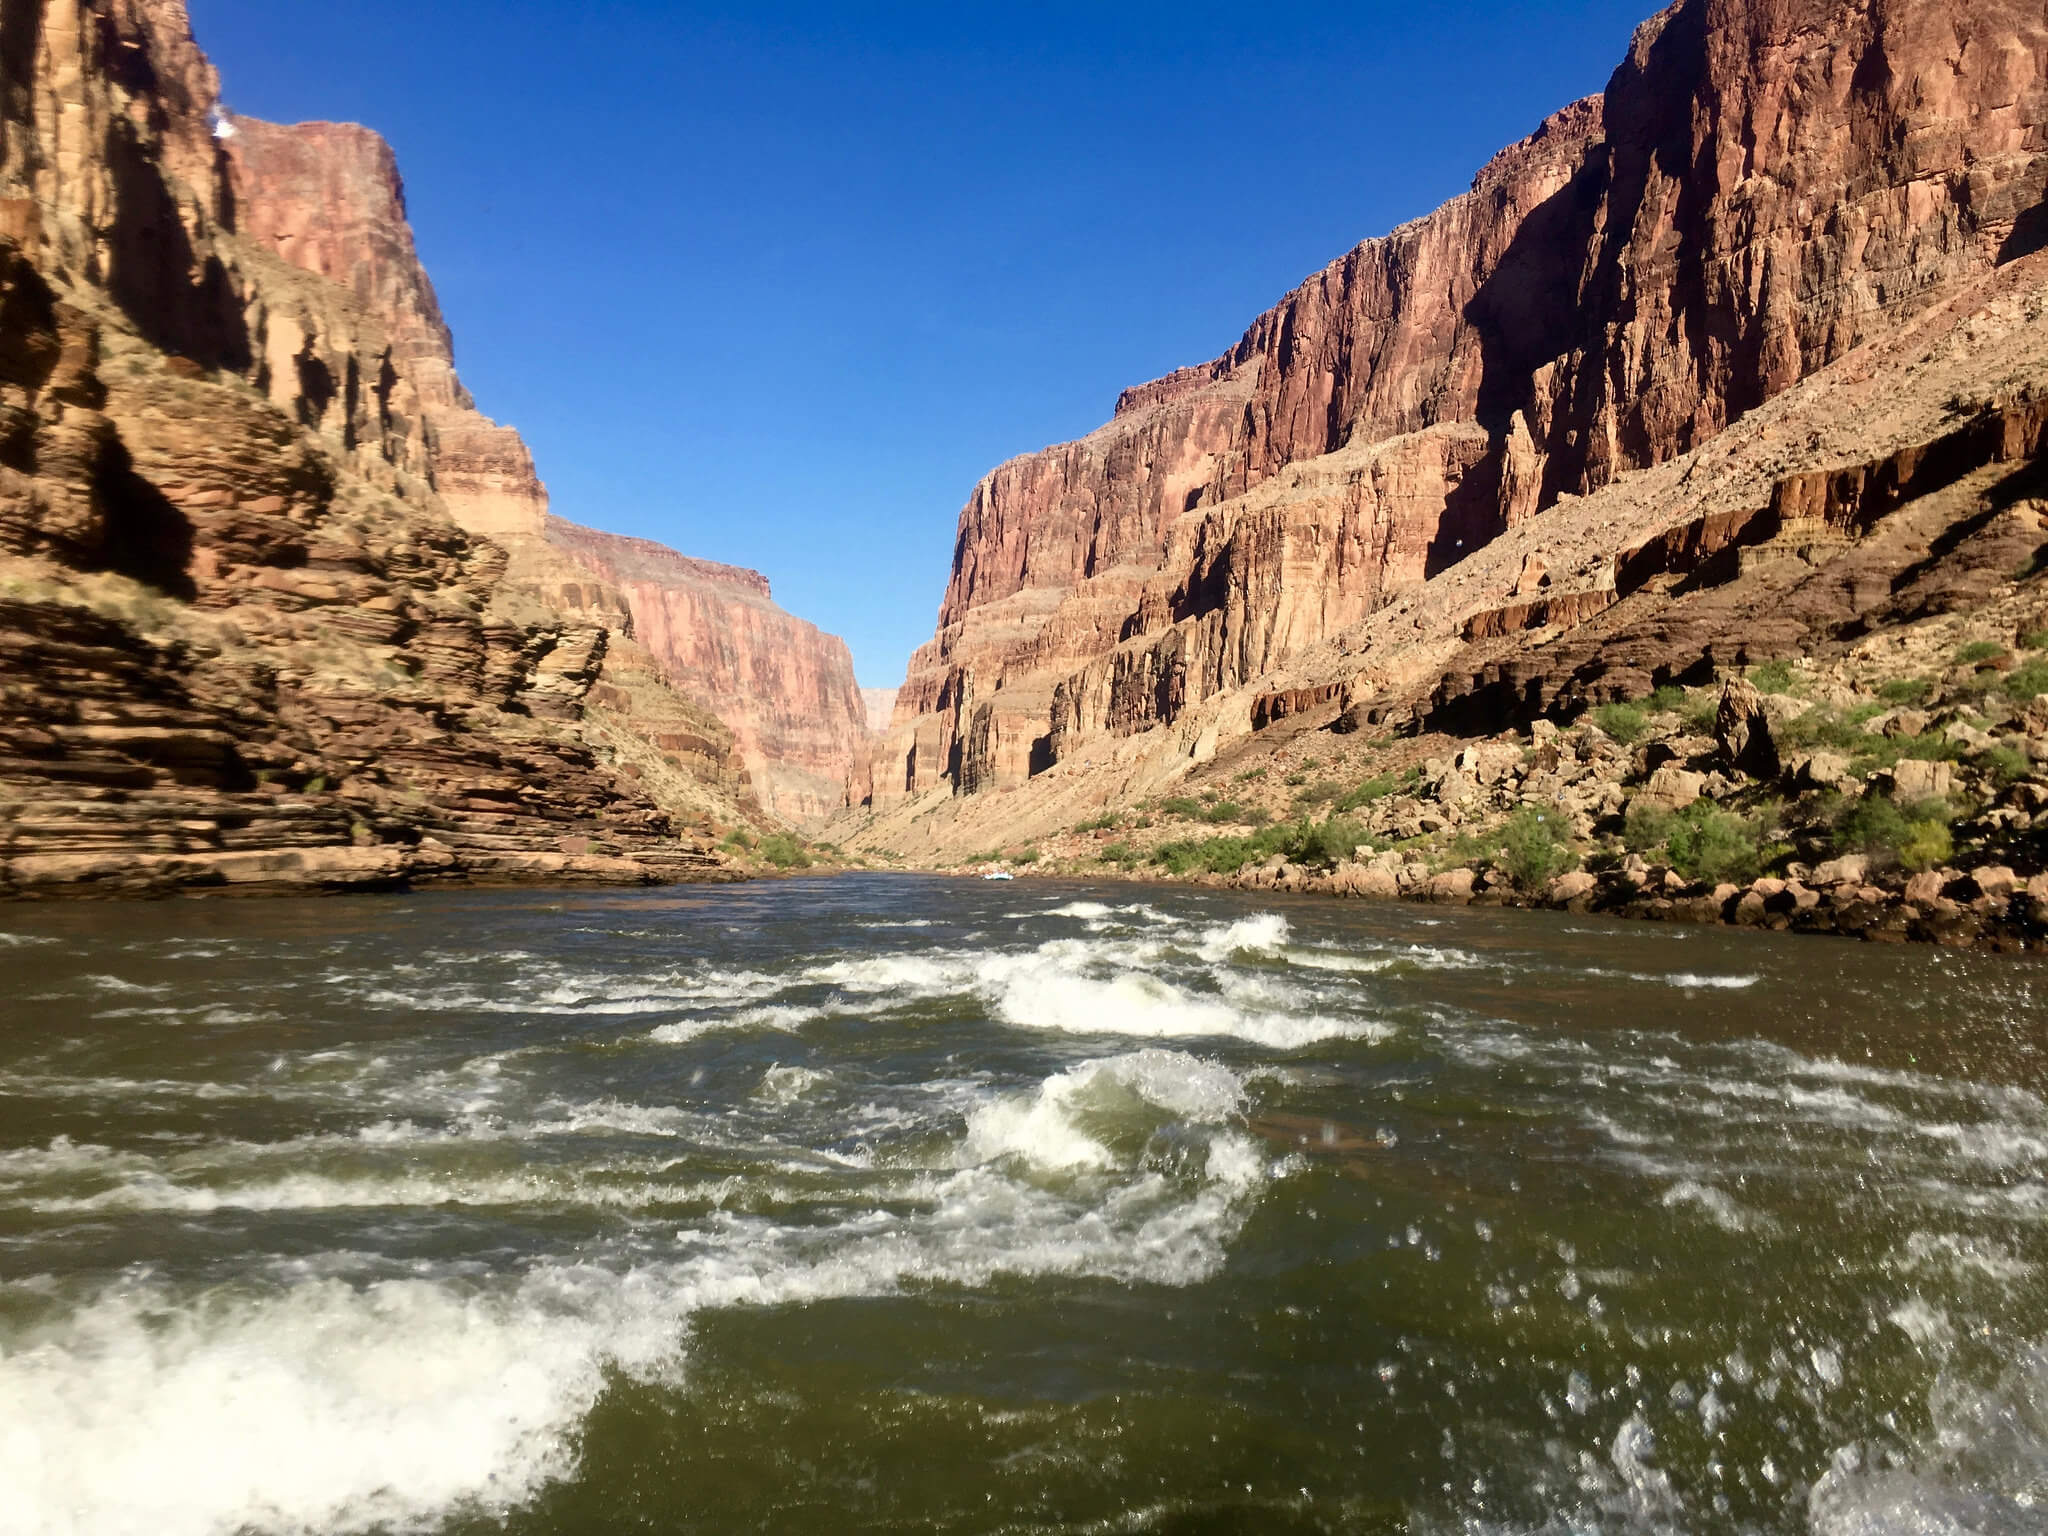 6 Curious Things You Never Knew About This Famous Grand Canyon Disappearance